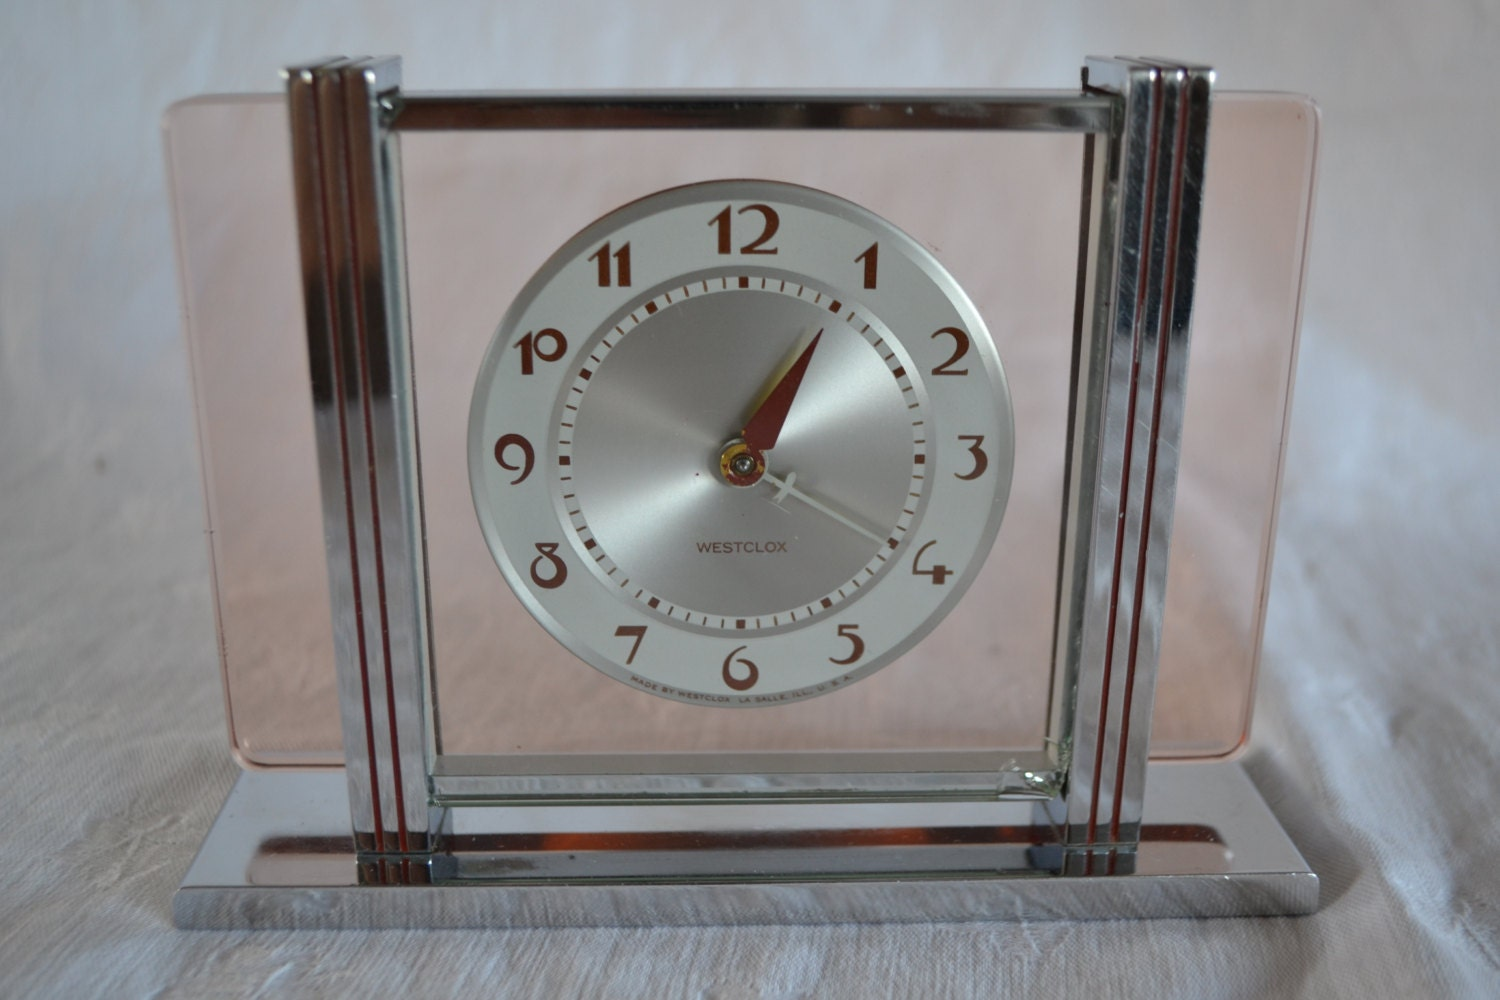 Westclox leland art deco pink glass alarm clock by Art deco alarm clocks